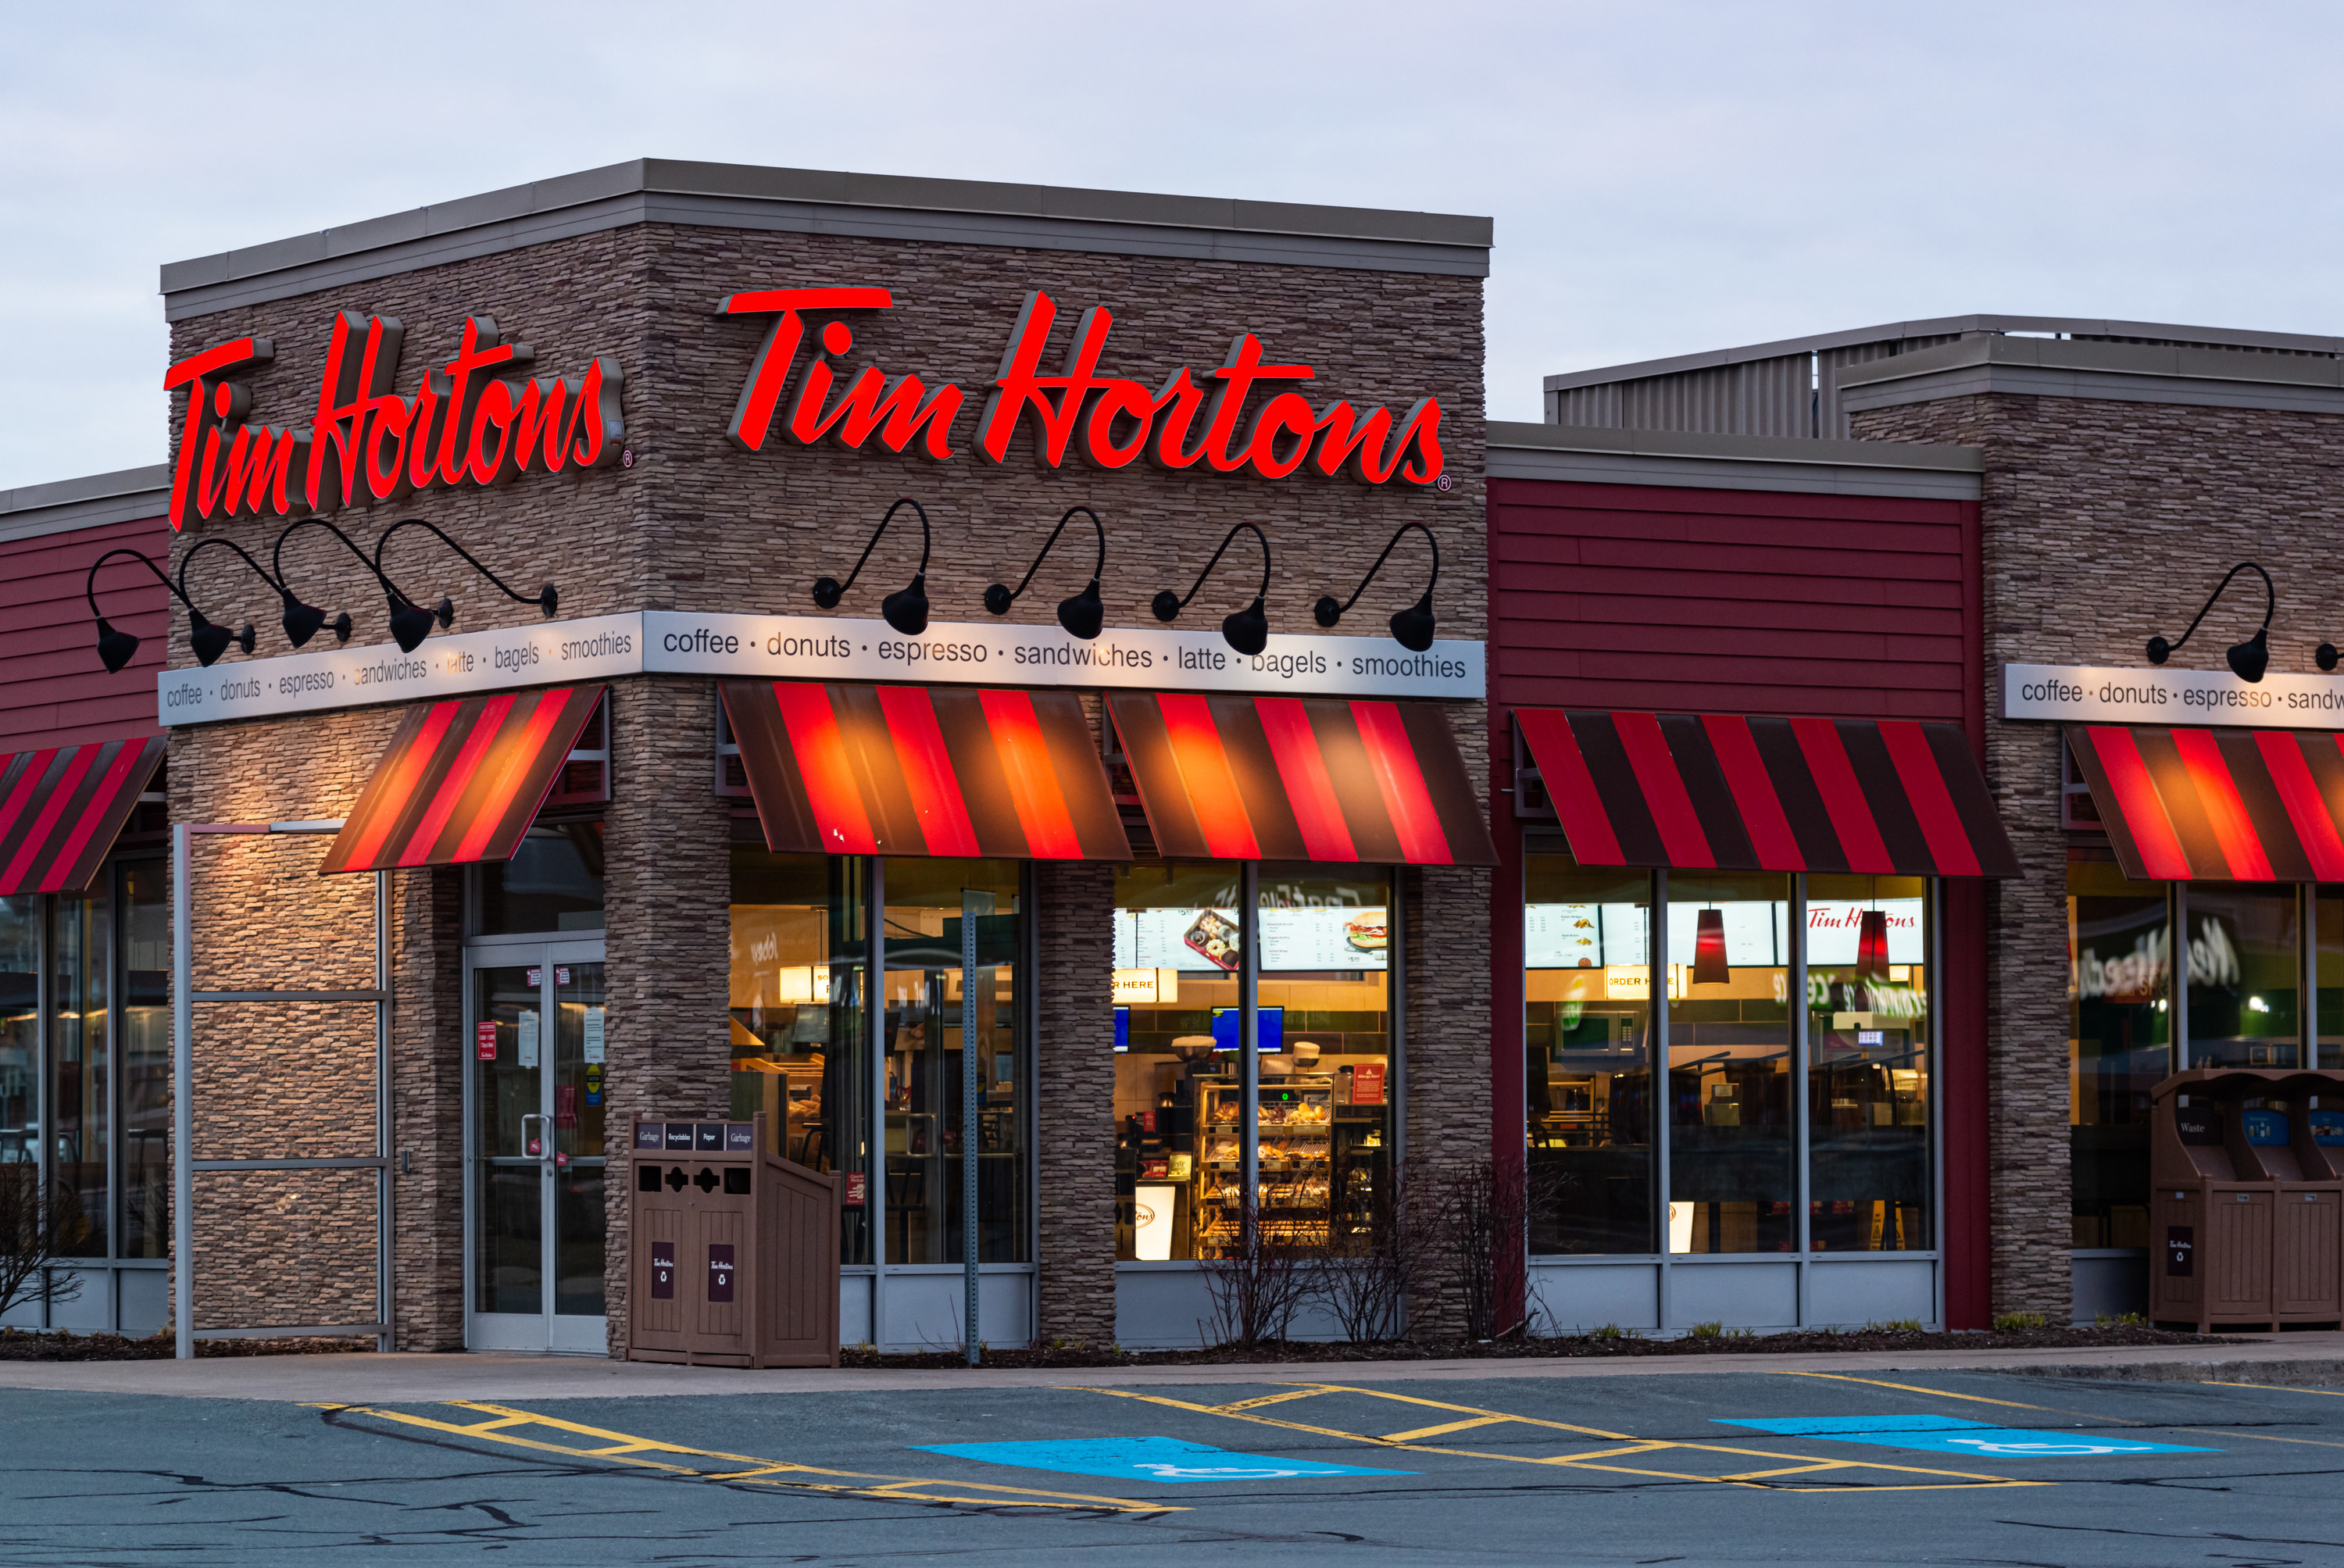 """The restaurant chain Tim Hortons building can be seen with a red and black awning. The words """"Tim Hortons"""" are in red."""